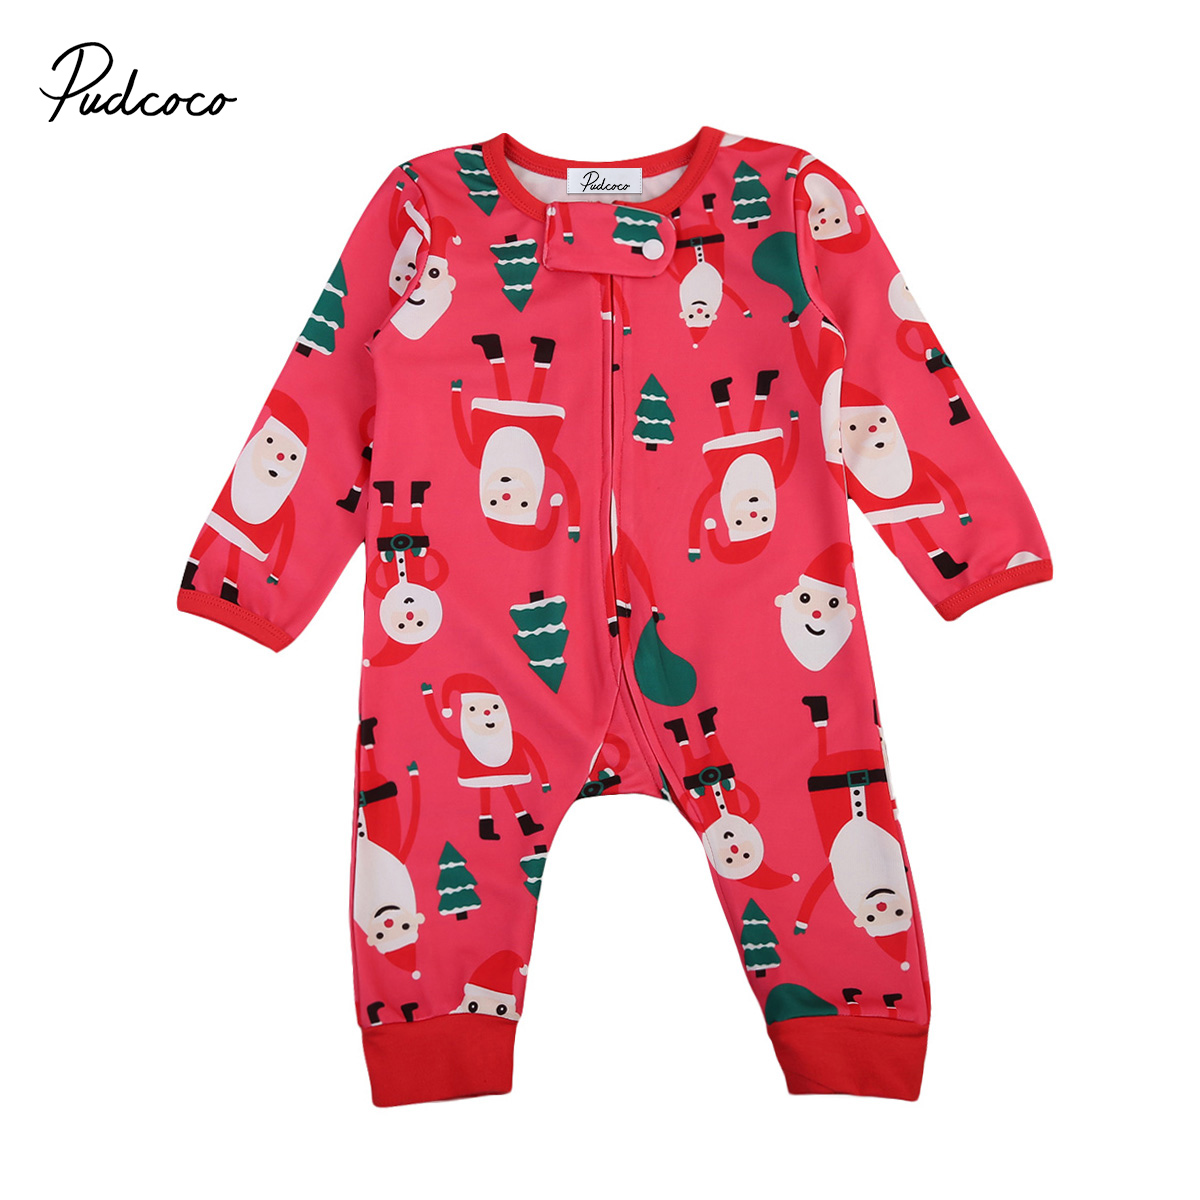 Pudcoco Christmas Clothing Infant Baby Boys Girls Clothes Long Sleeve Romper Jumpsuit Autumn Baby Clothes 100% cotton baby boys girls long sleeve romper stripe panda jumpsuit clothes newborn infant baby clothing christmas gift